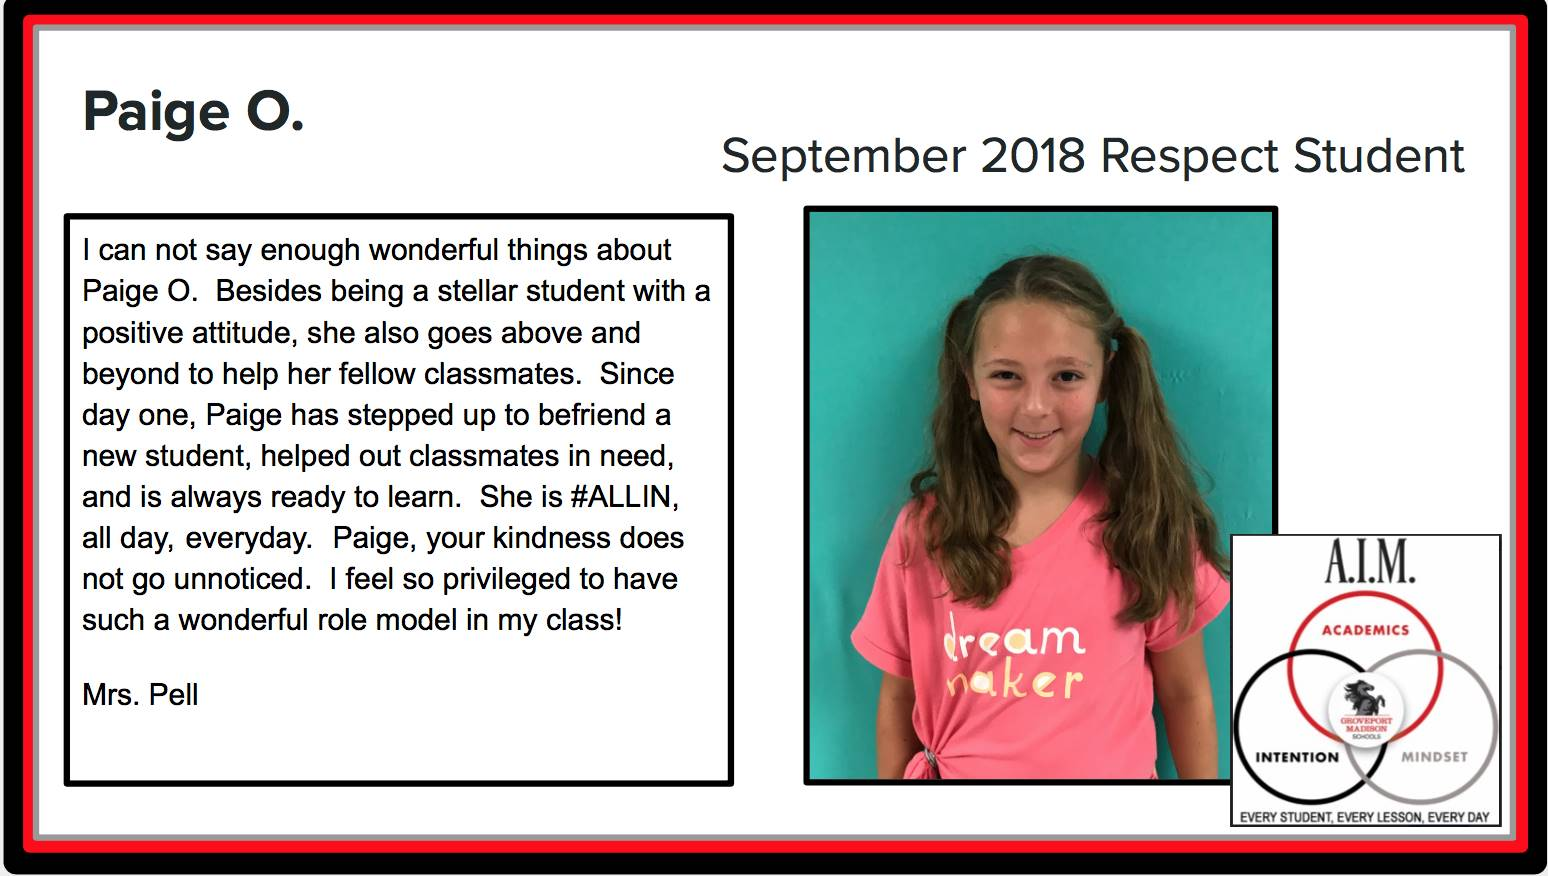 September Respect Student Paige